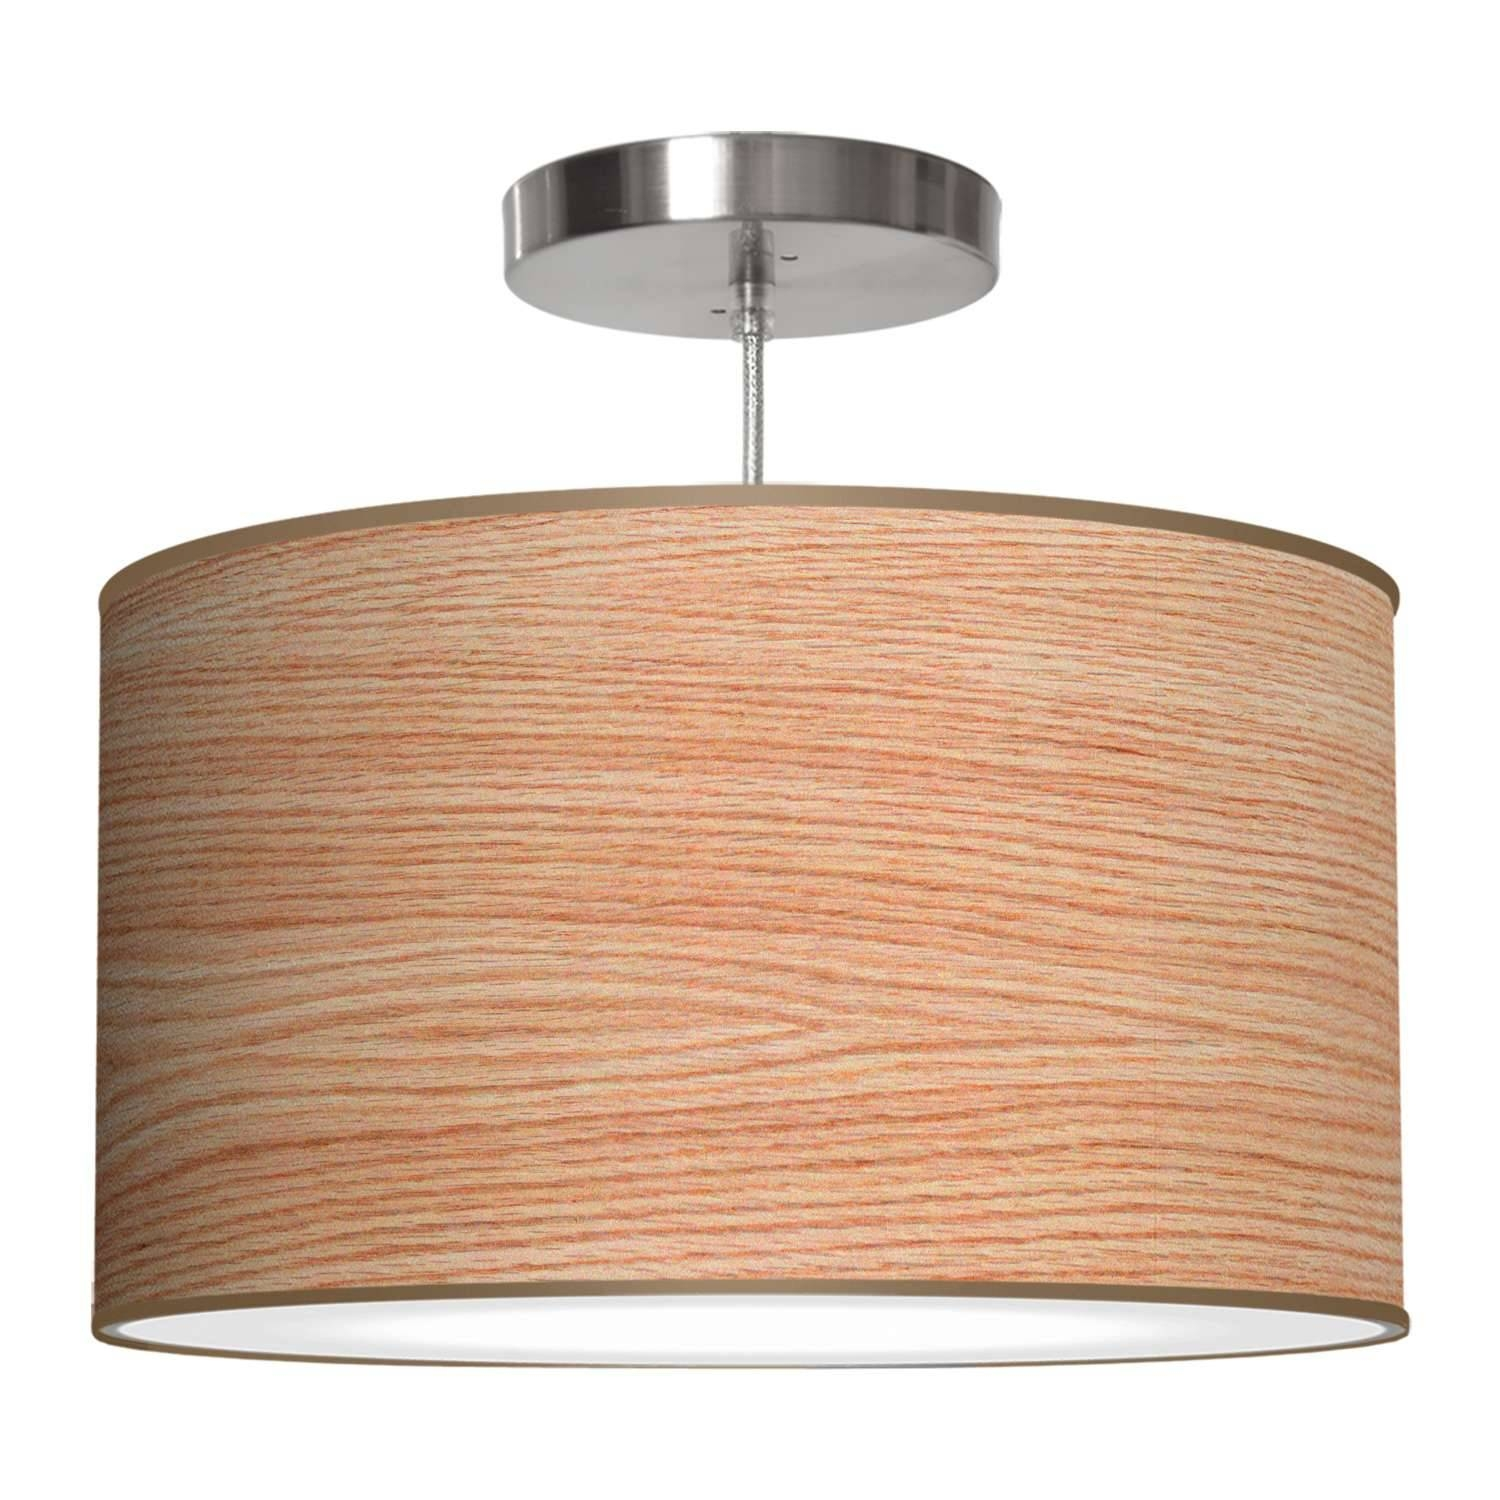 Thao Pendant Lightseascape Lamps | Ylighting throughout Wood Veneer Pendant Lights (Image 12 of 15)